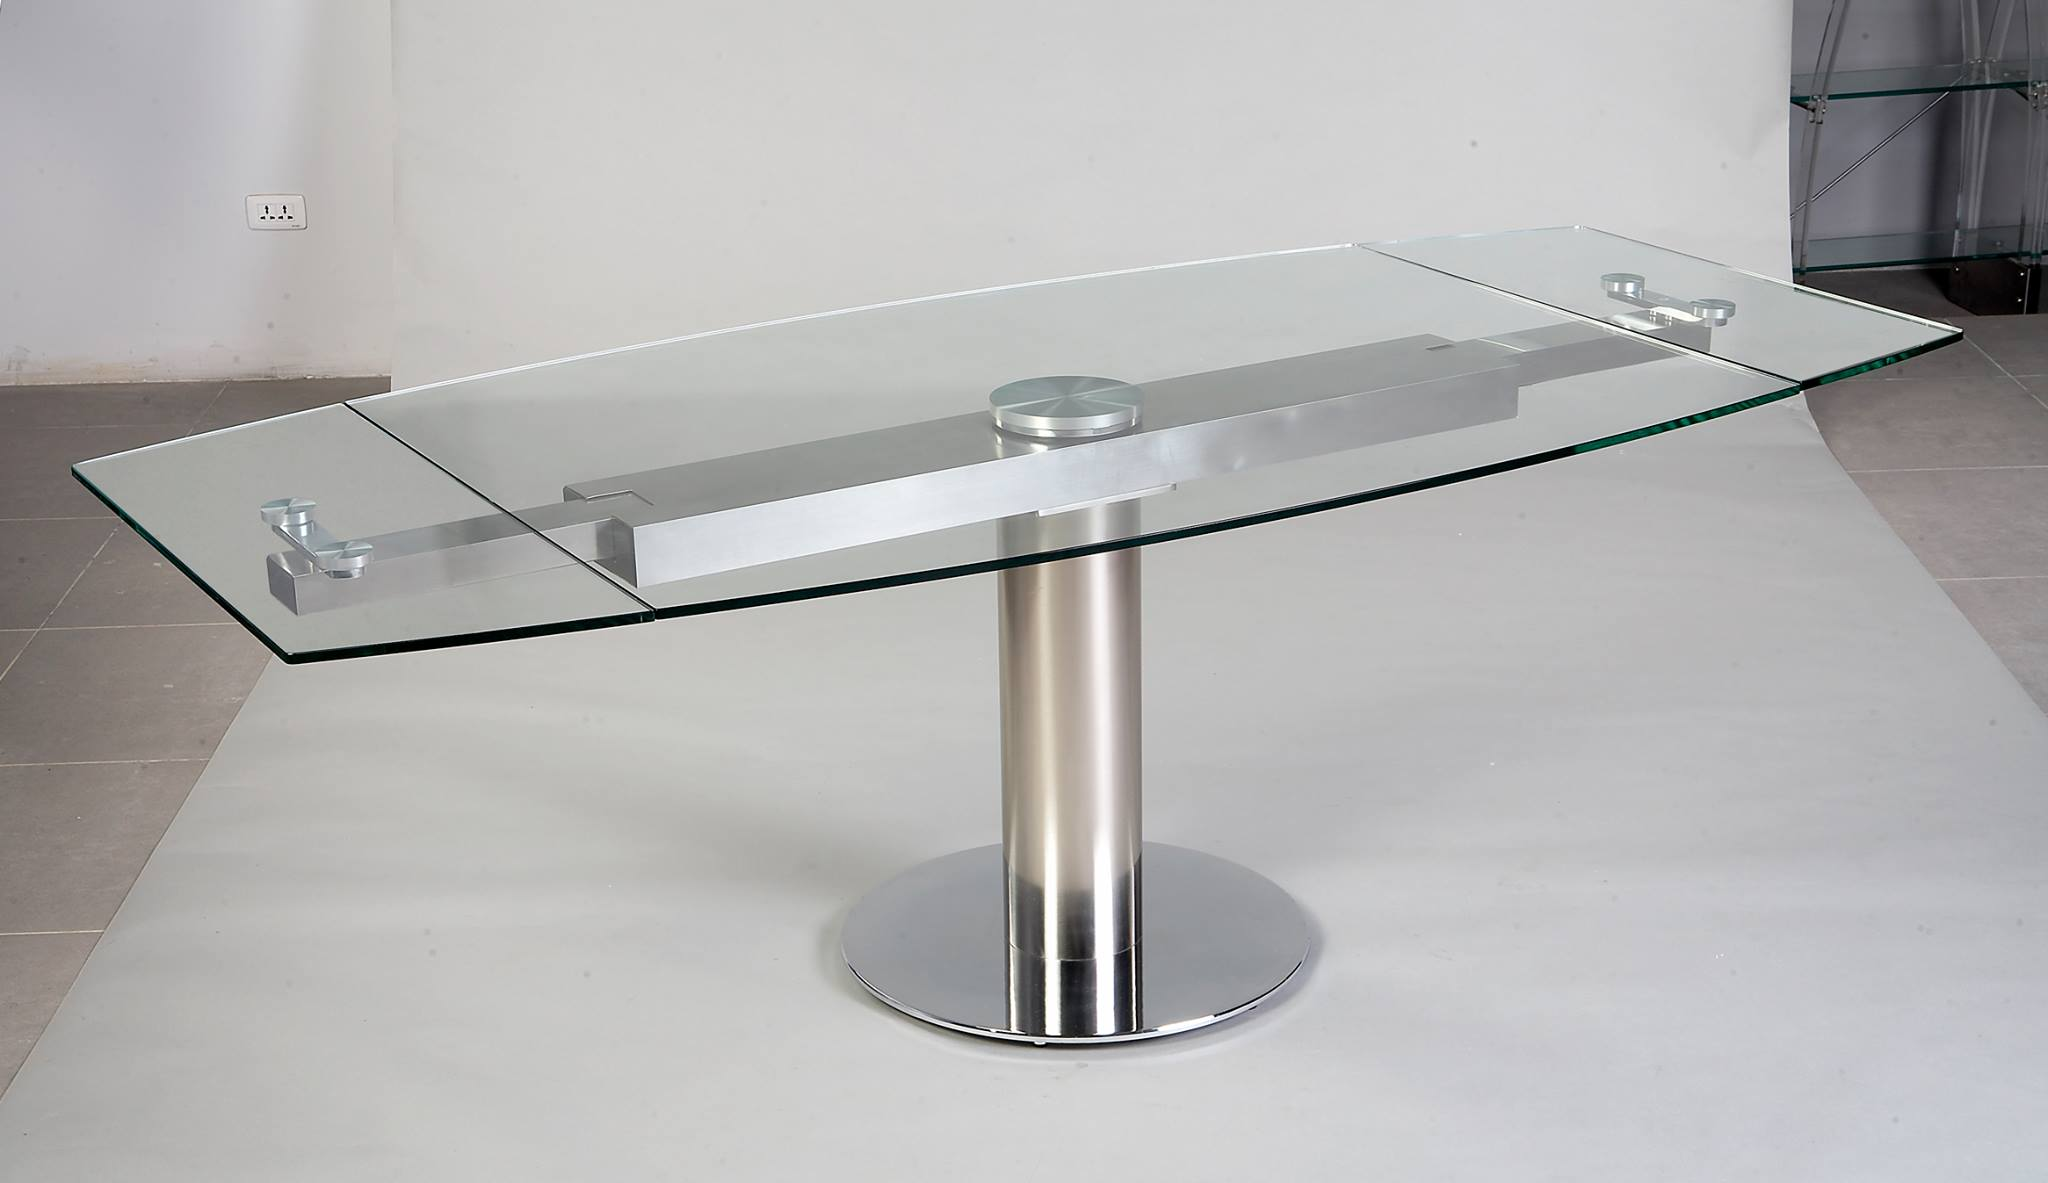 Table verre pied central allonge for Table de salle a manger ovale avec rallonge